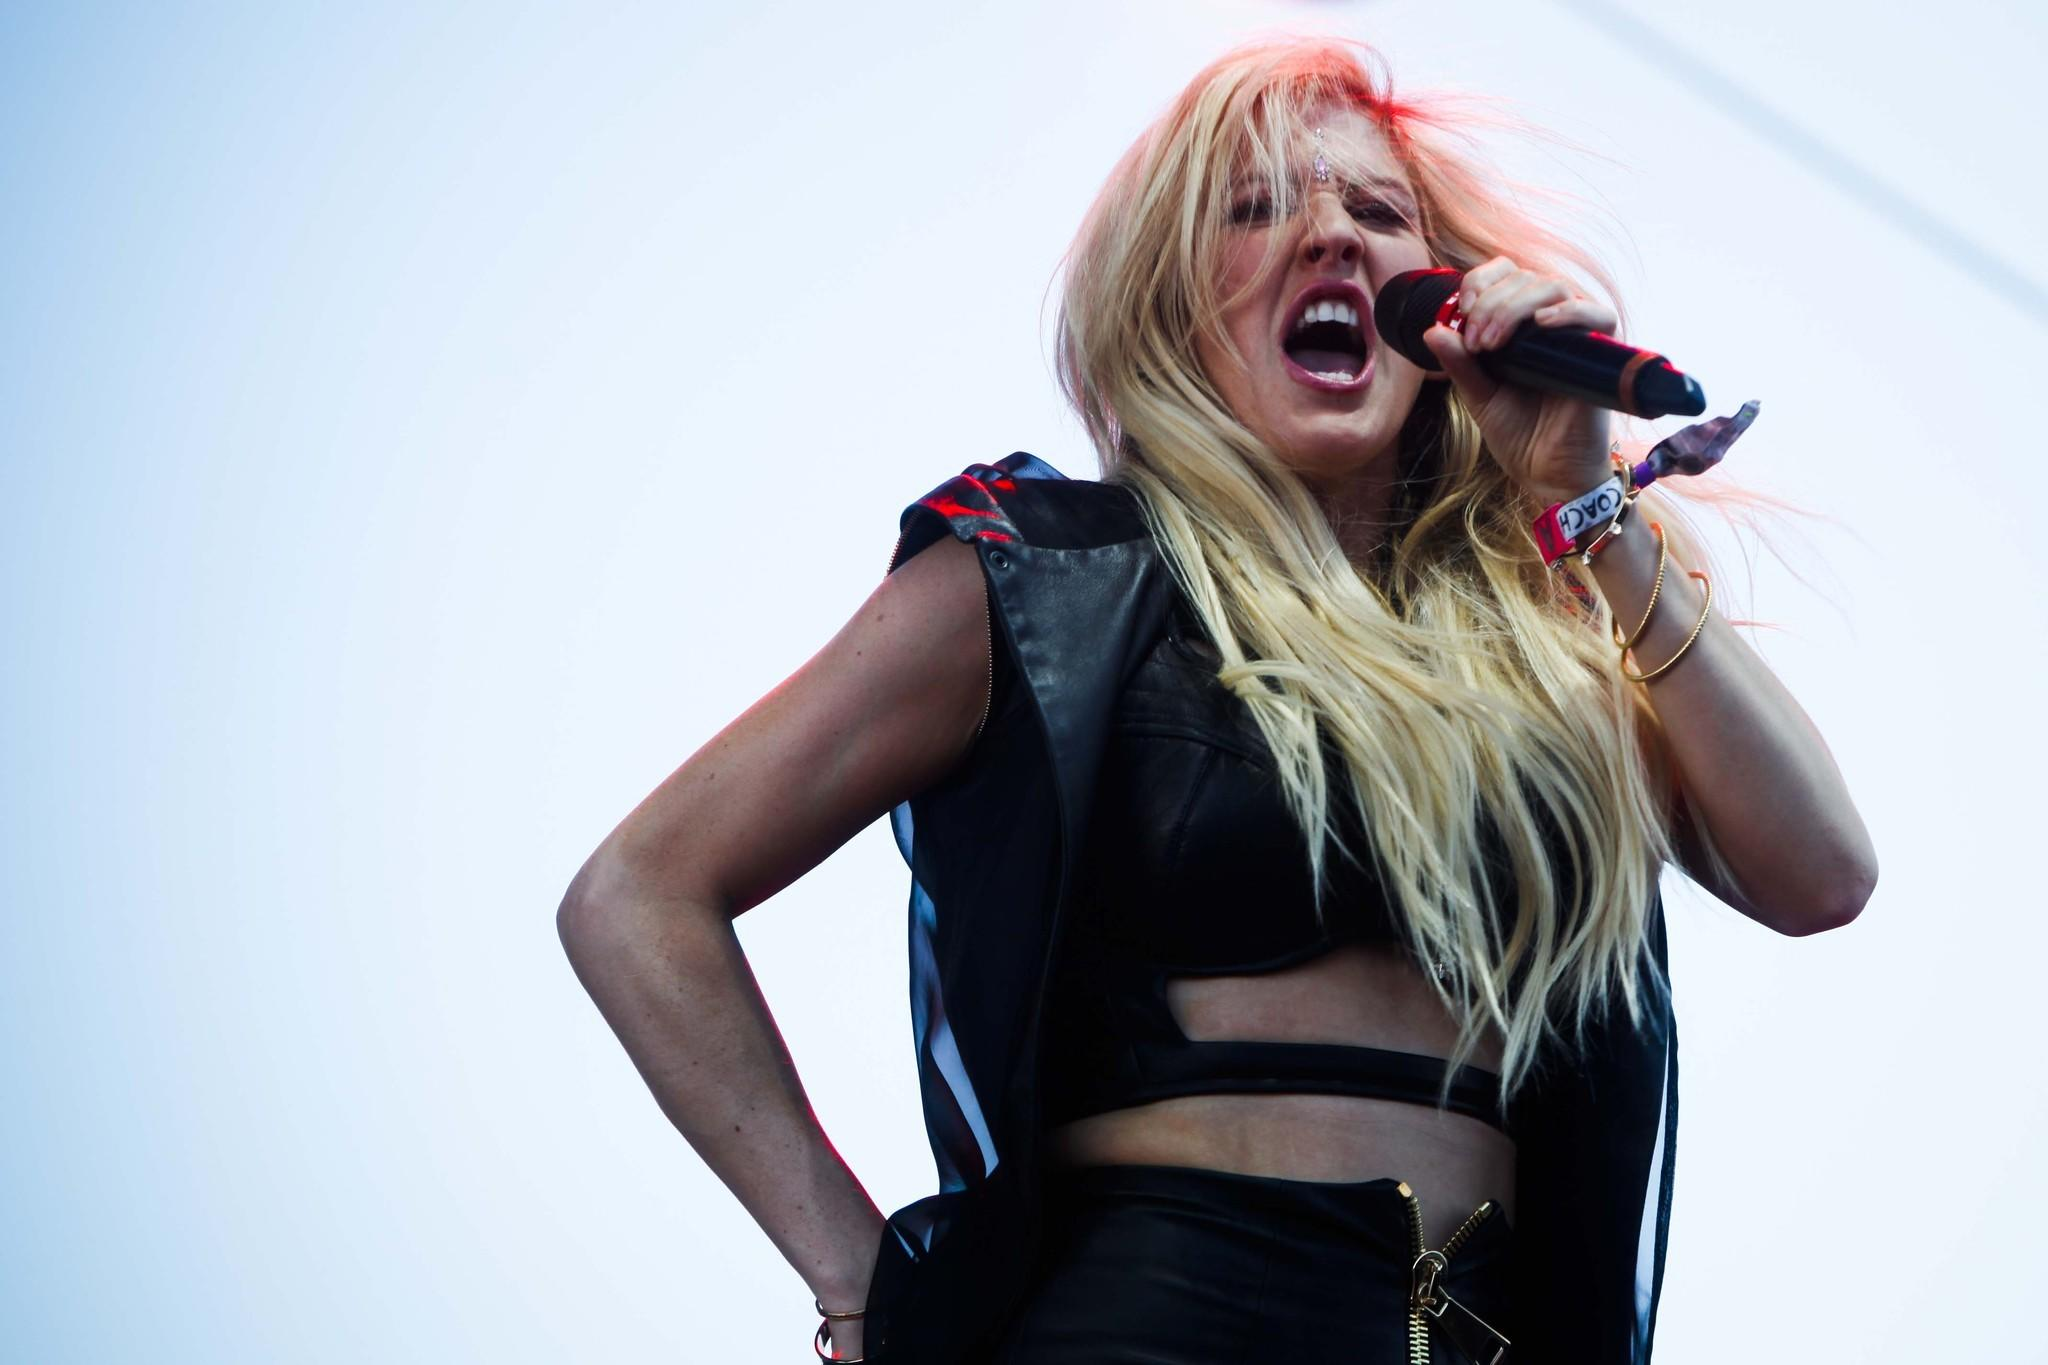 Ellie Goulding performs on the main stage at the Coachella Valley Music and Arts Festival in Indio on Friday.